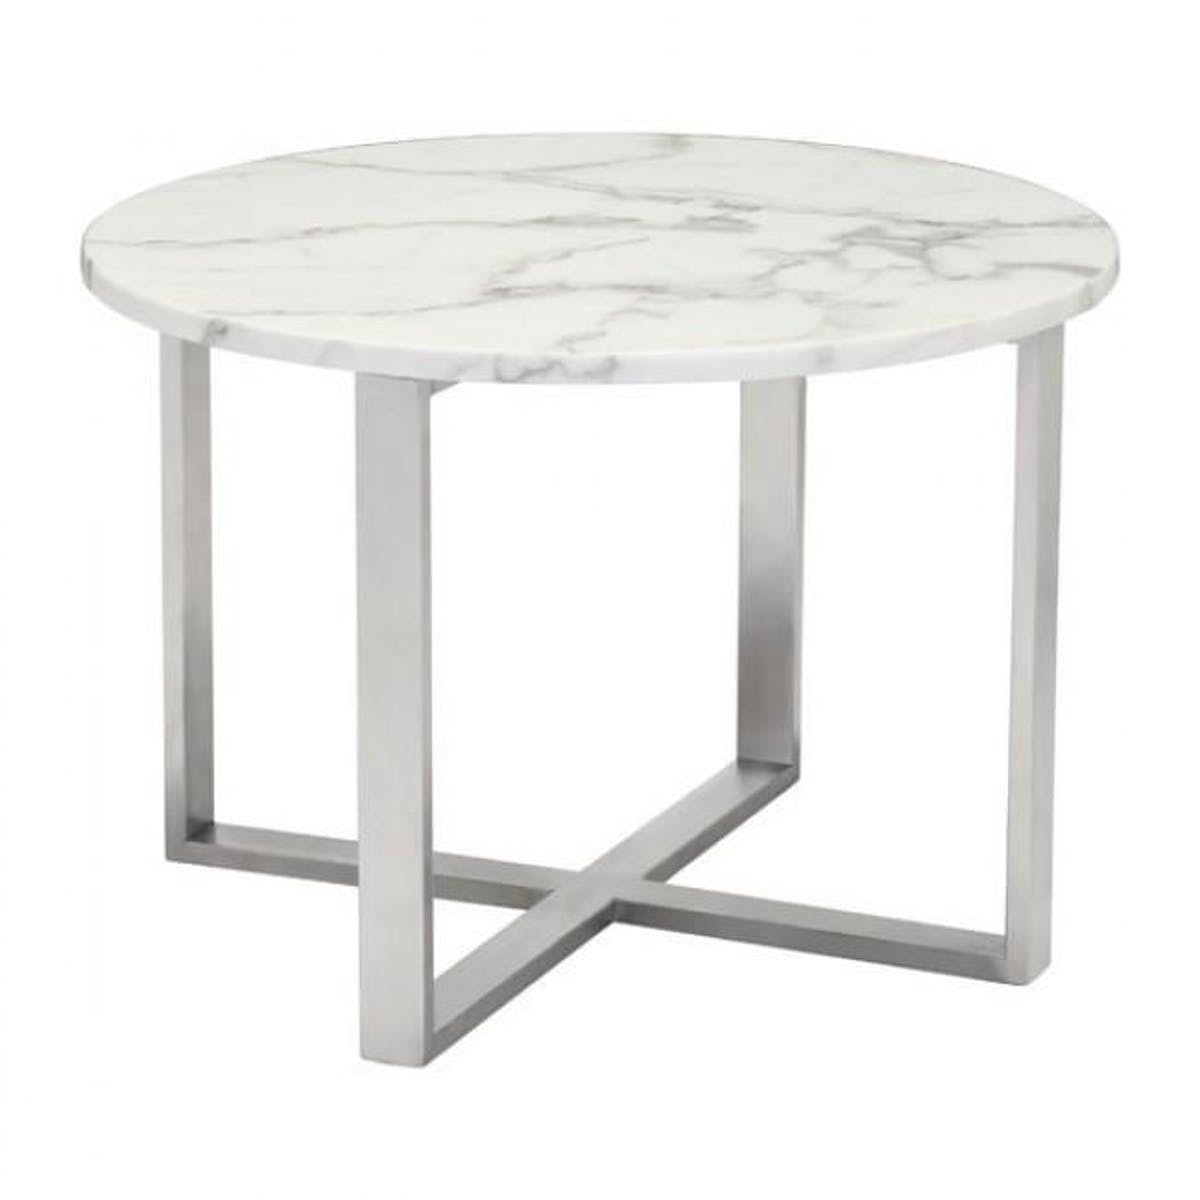 wood game table probably outrageous best the zuo modern globe end modish purple lamp matching nightstands furniture farm woodworking plans glass tables easy dog house round marble